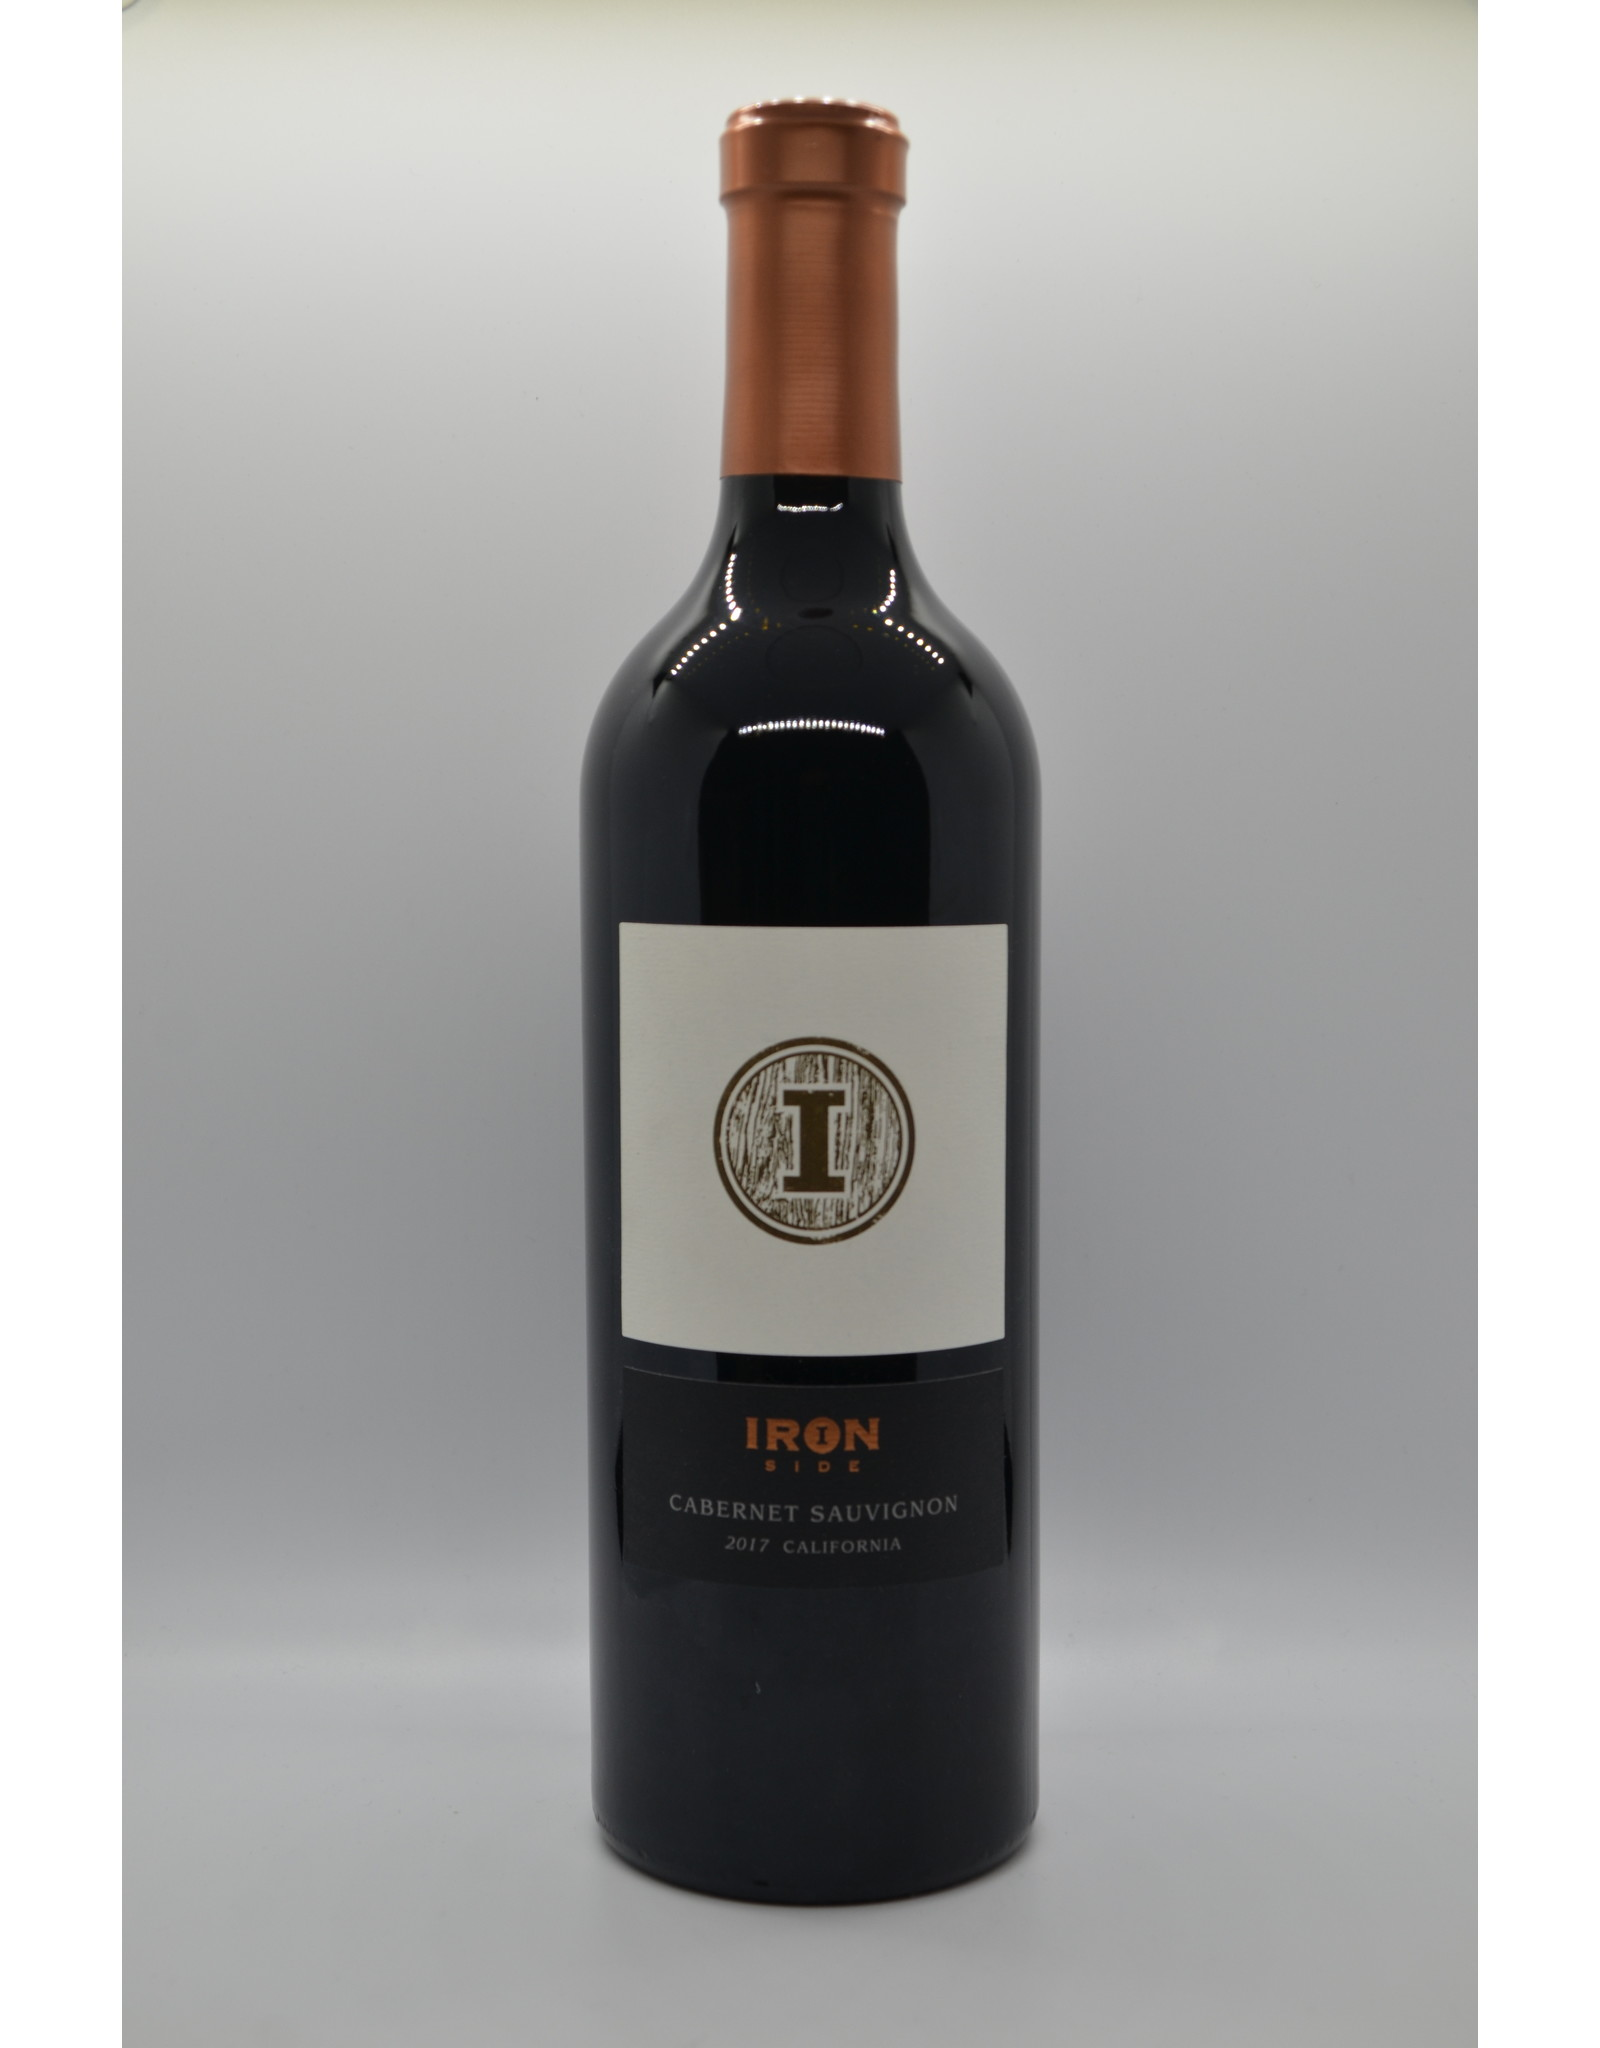 USA Iron Side Cabernet Sauvignon